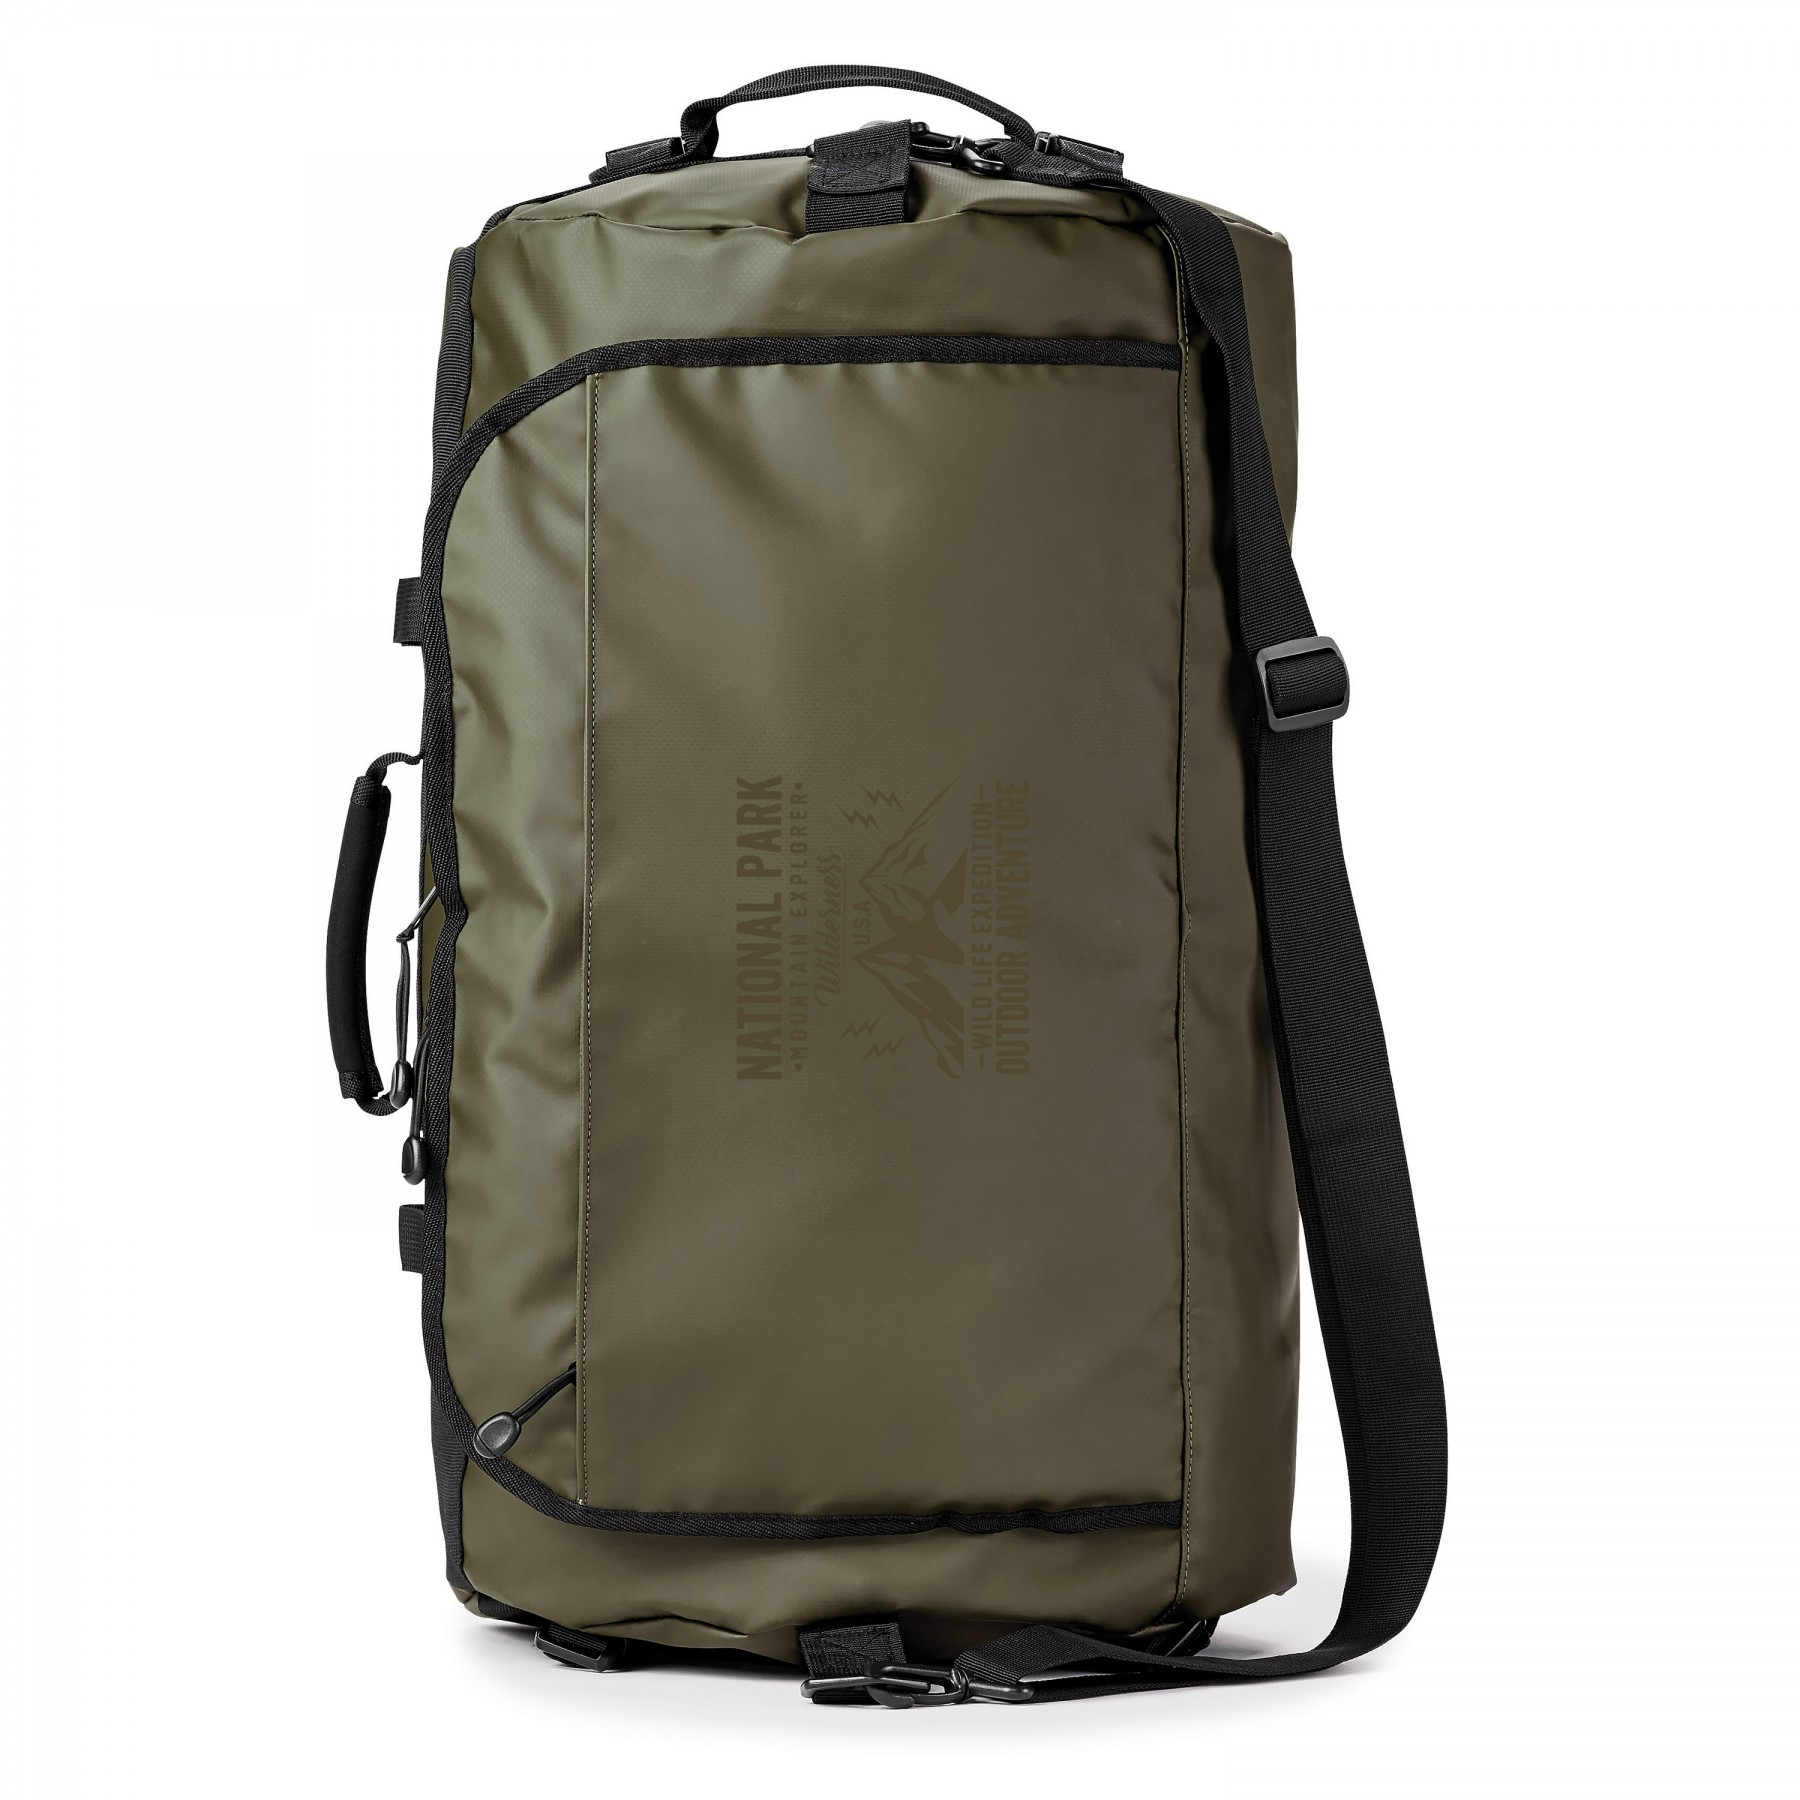 Call Of The Wild Water Resistant 45l Duffle Backpack, BG207, One Colour Imprint